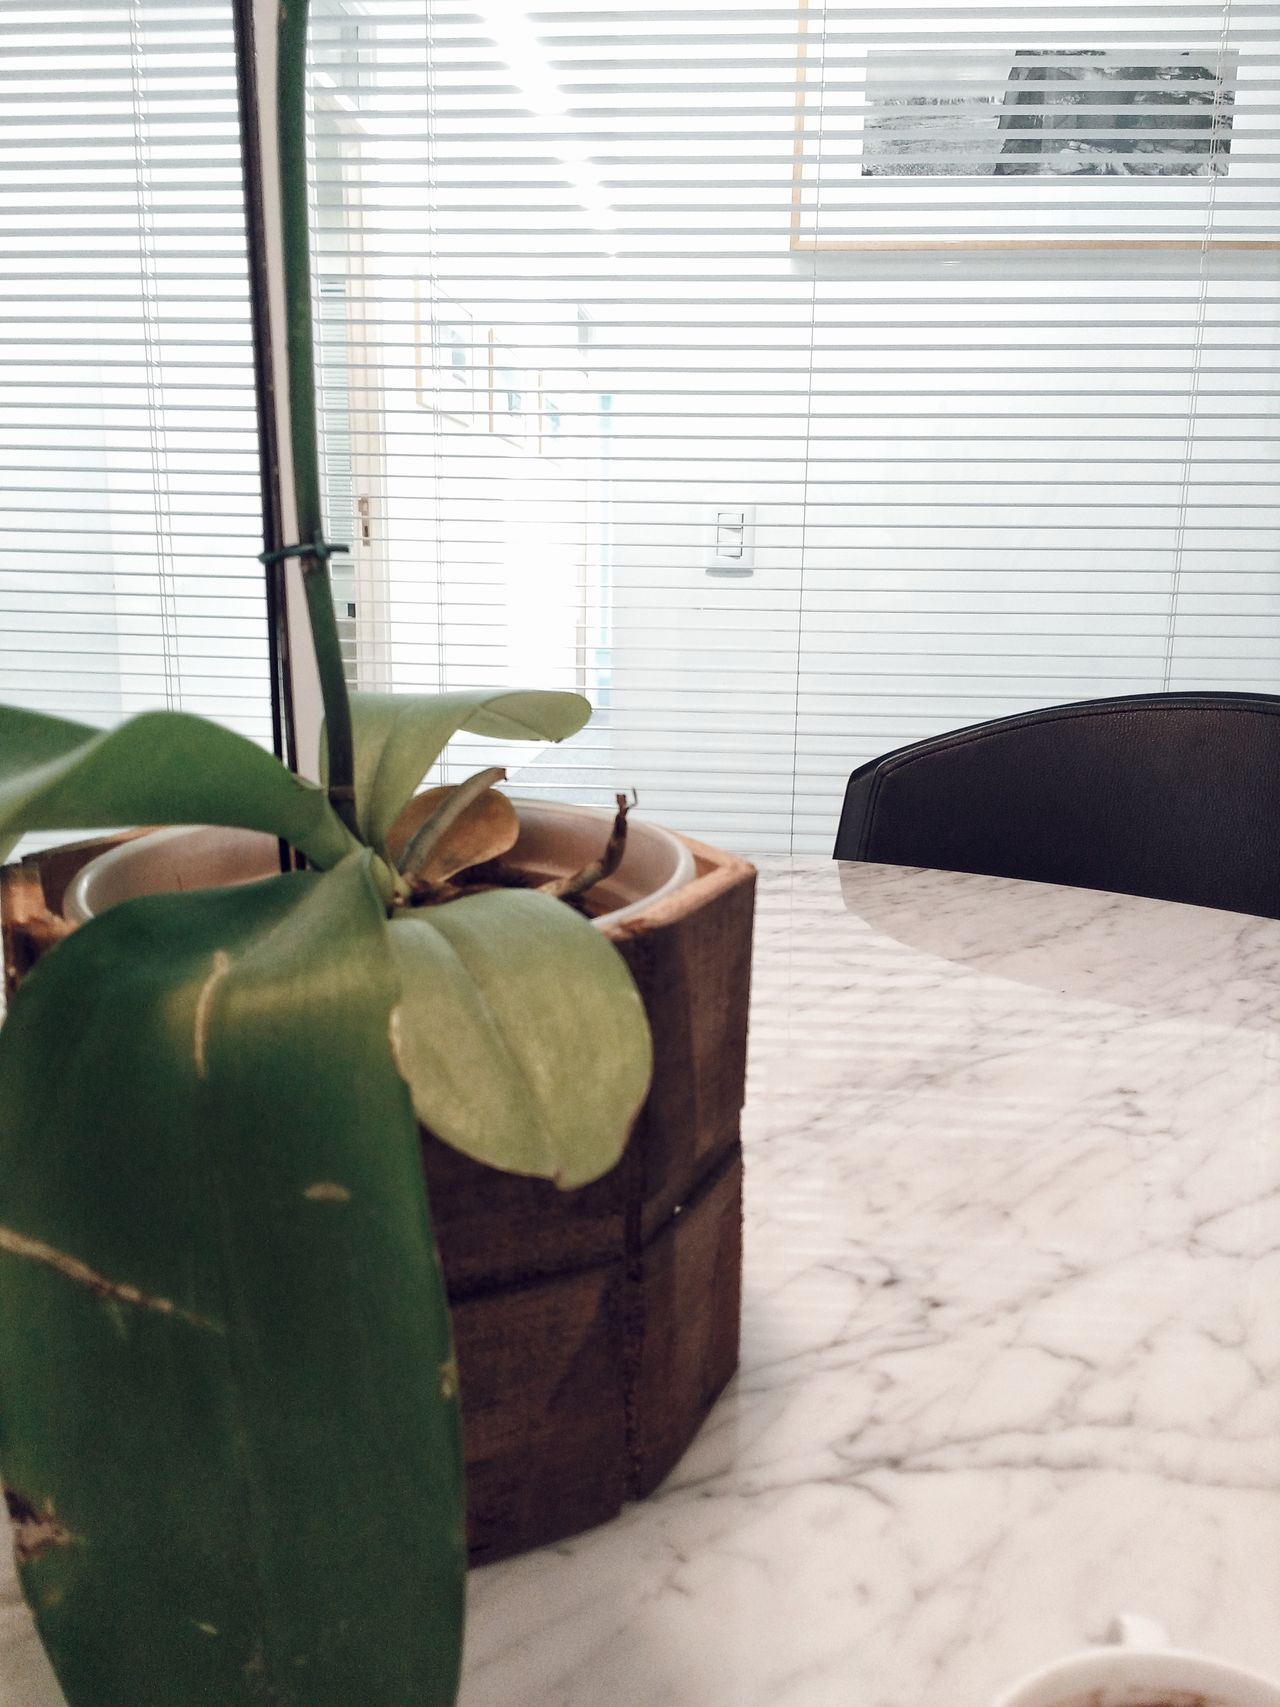 An artificial plant in an office. Indoors  Window Home Interior Day Close-up Artificial Plant Artificial Flower White Minimalistic Office Work Job Blinds Working Environment Clean Room Decor Decoration Light Close Up Table Desk Glass Marble Reflection